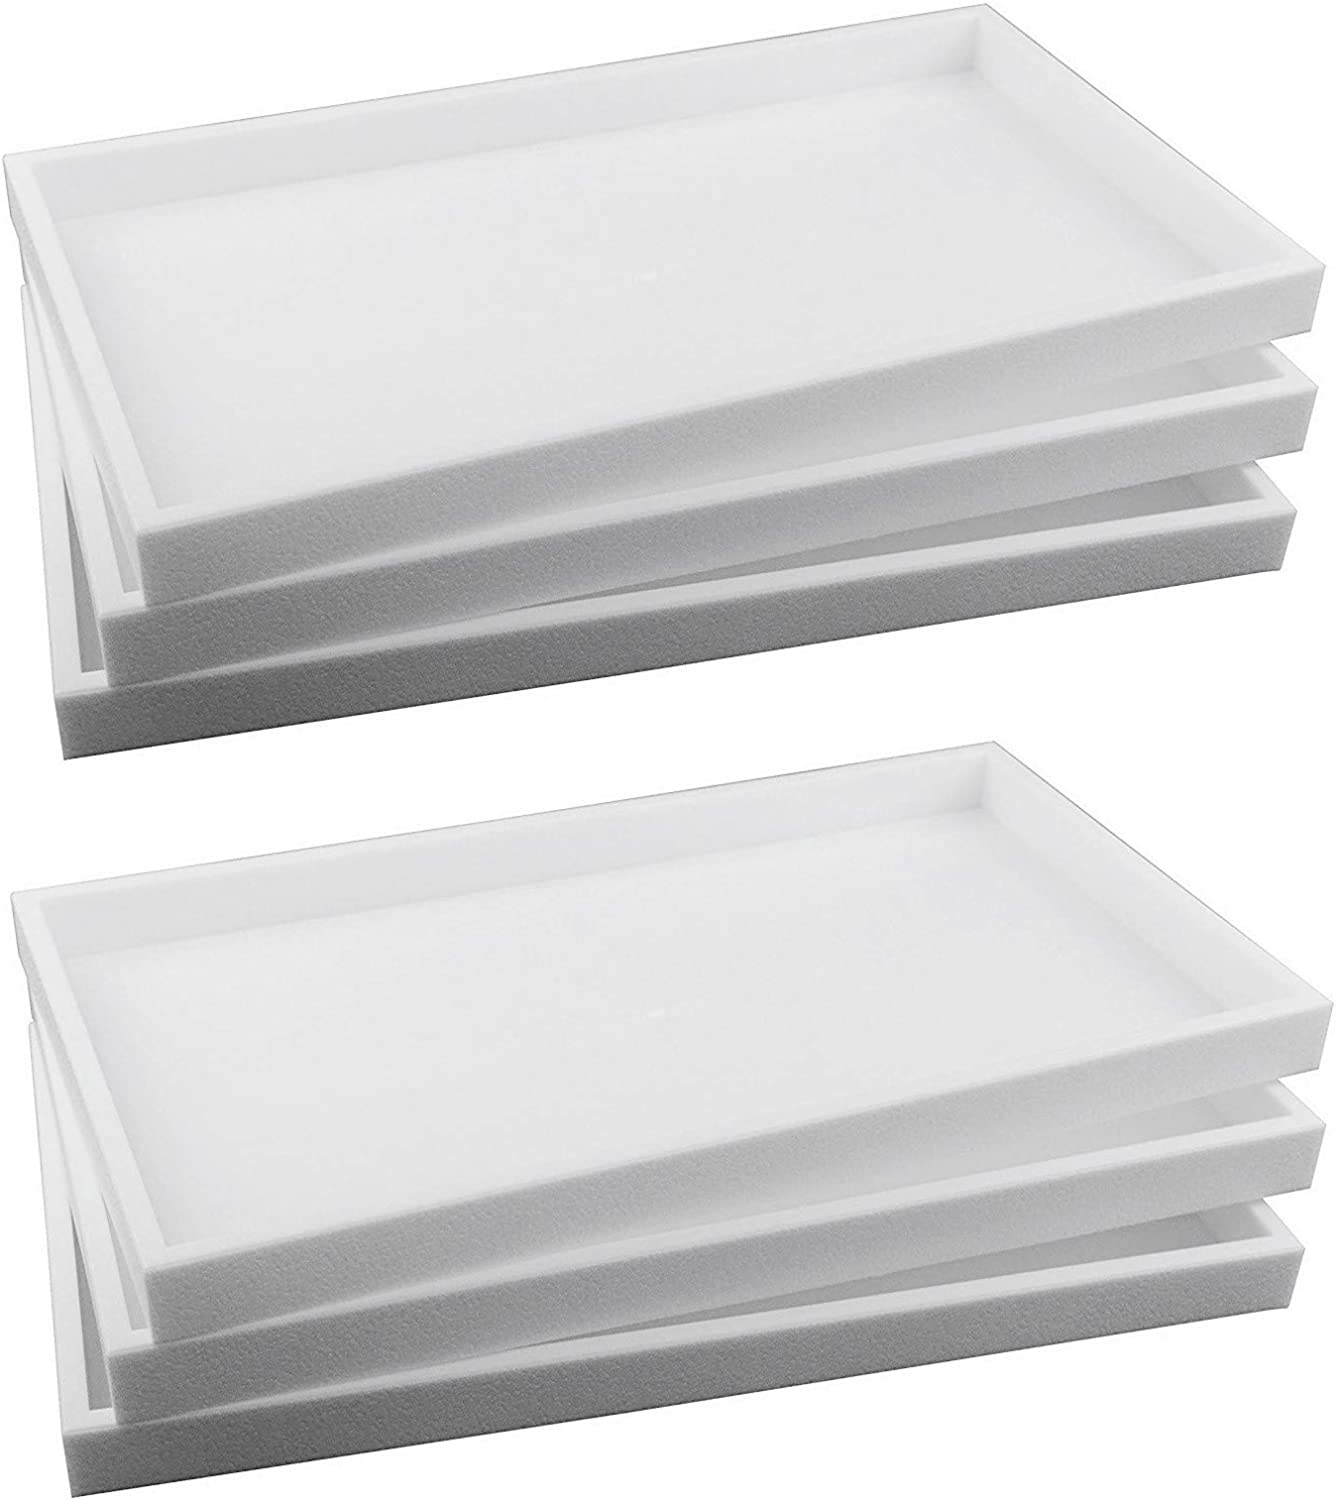 888 Display USA 6-Piece 1-Inch Deep White Full Size Plastic Stackable Jewelry Tray 14 3/4 X 8 1/4 X 1H